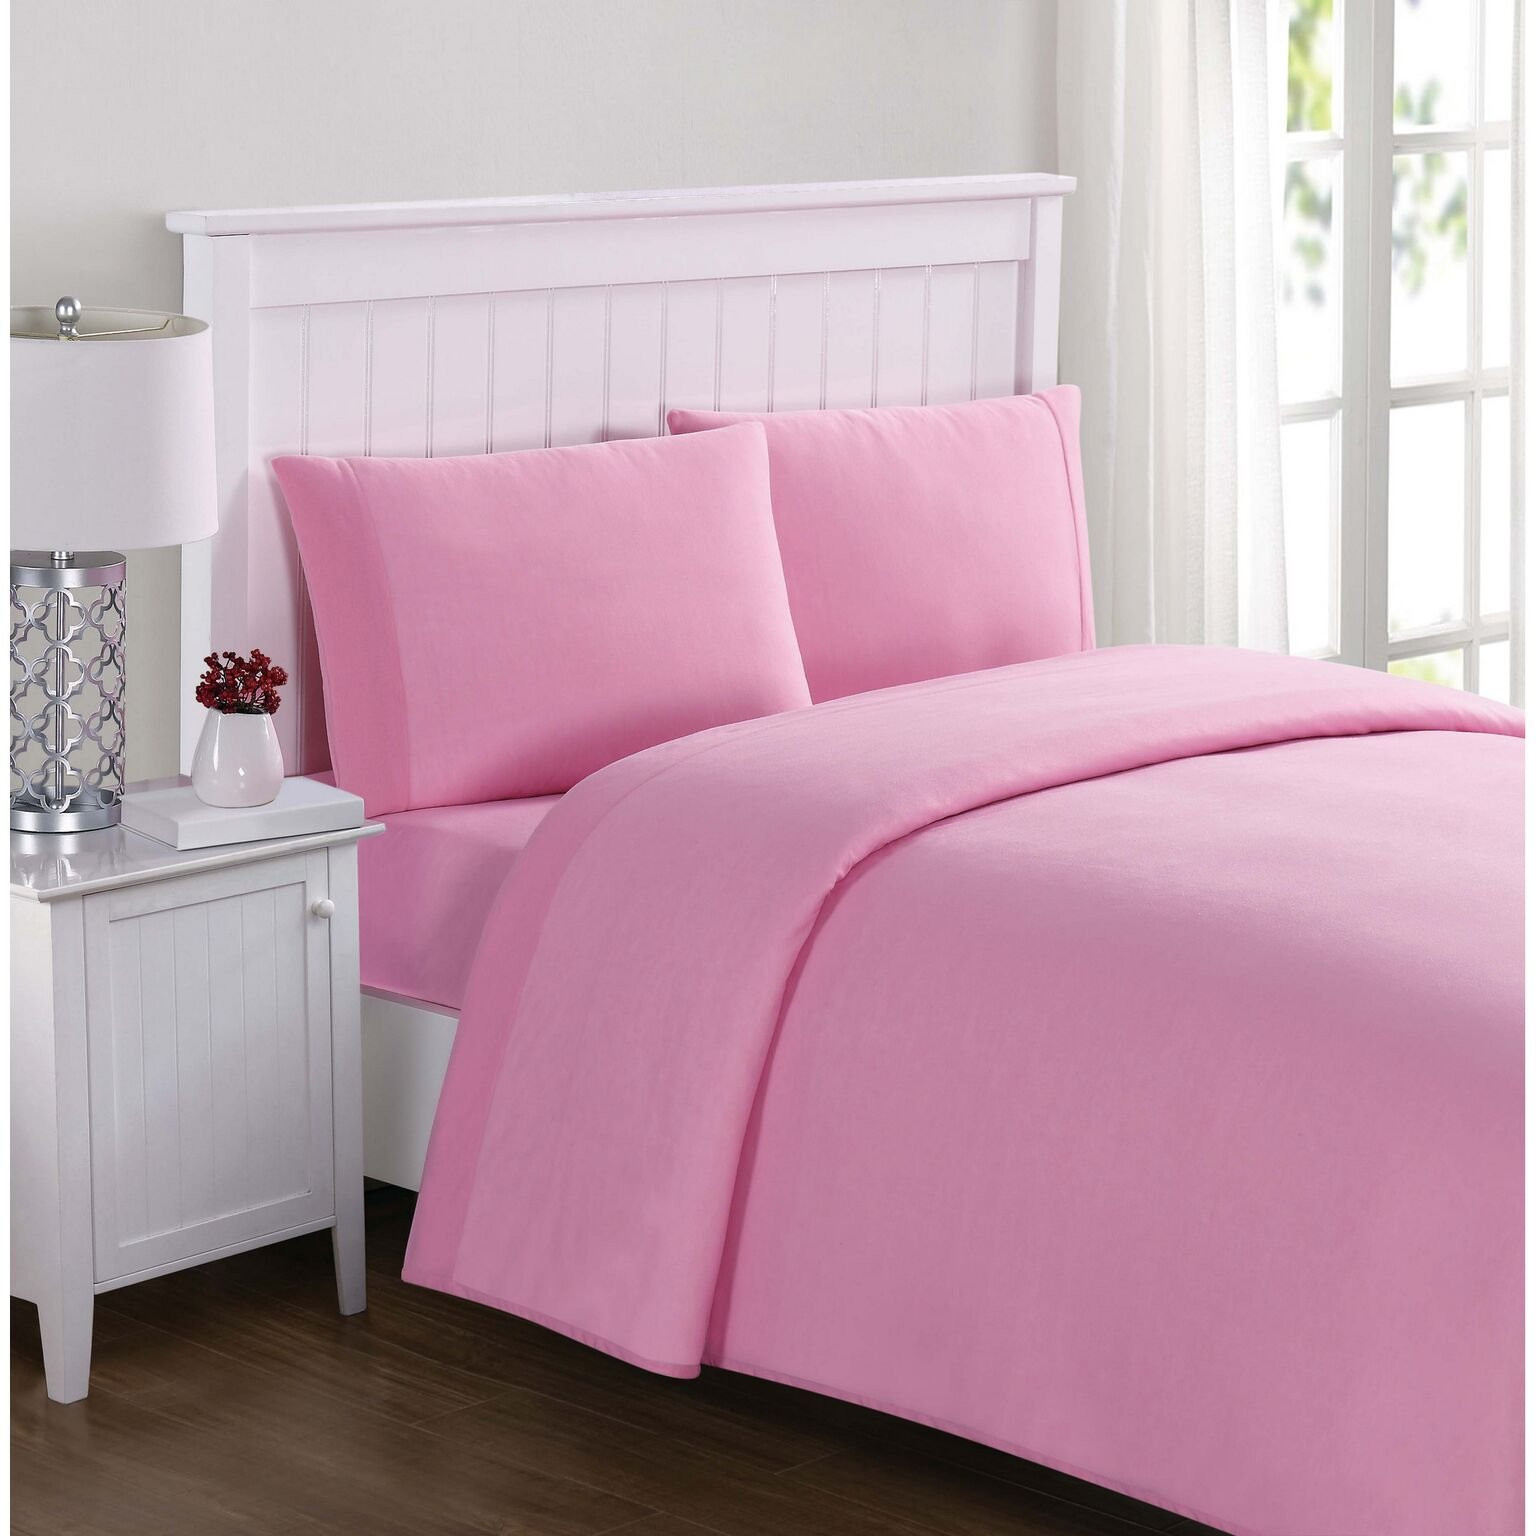 Truly Soft Solid Jersey, Twin XL Sheet Set, Pink